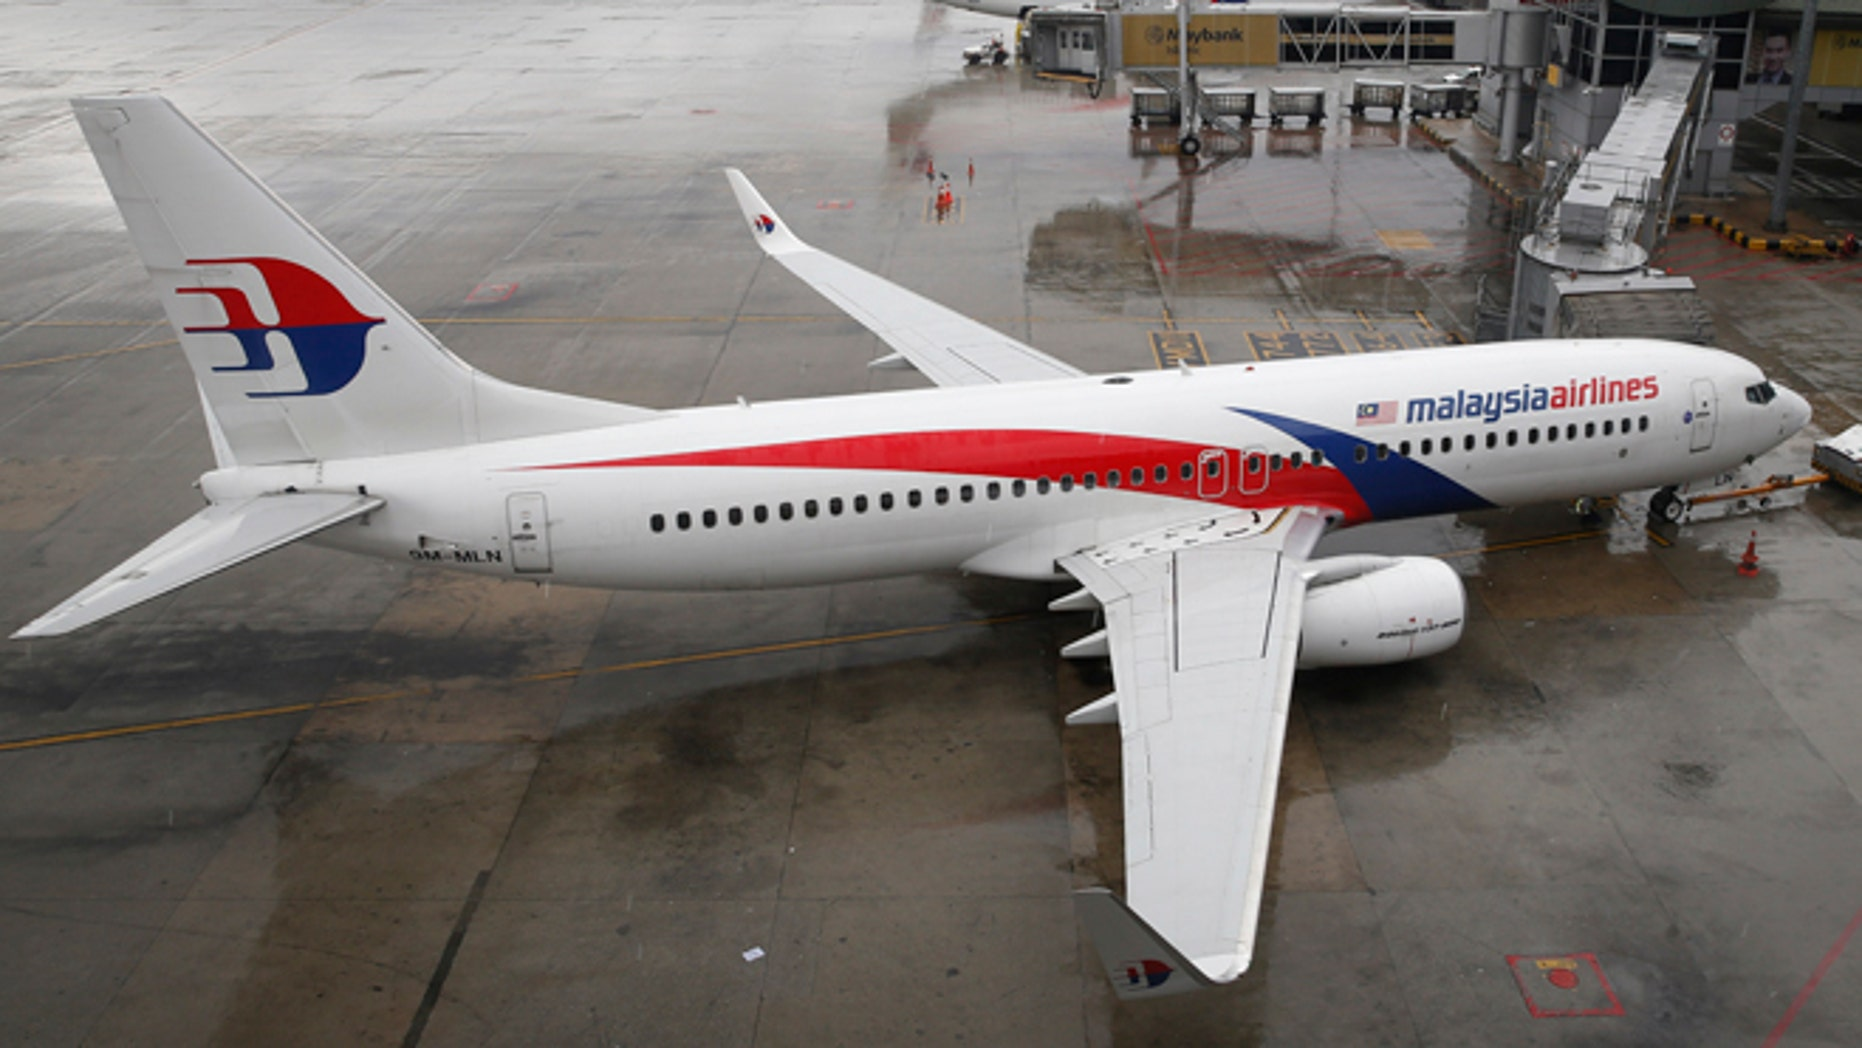 FILE: A Malaysia Airlines Boeing 737-800 plane sits on tarmac at Kuala Lumpur International Airport in Sepang, Malaysia.